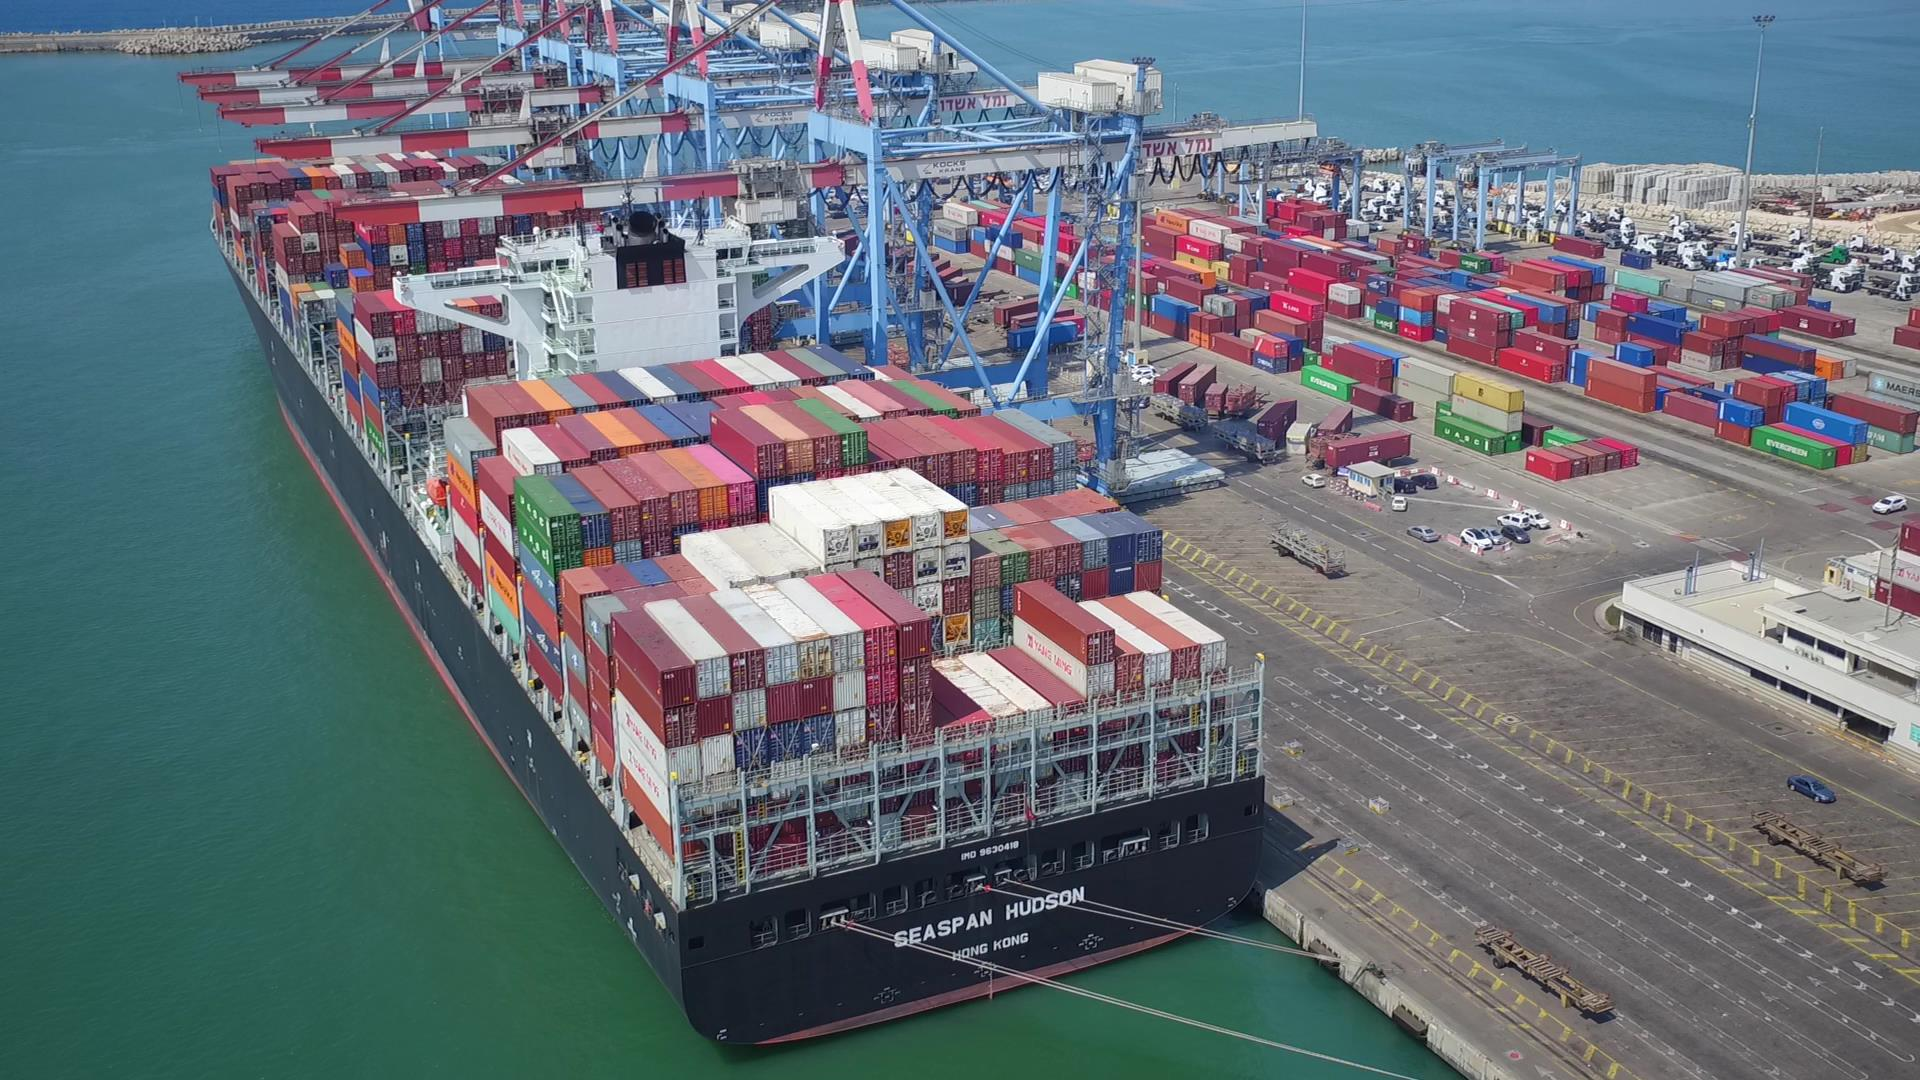 The trade union is opposed to the port's hire plan, says Ashdod Port Company